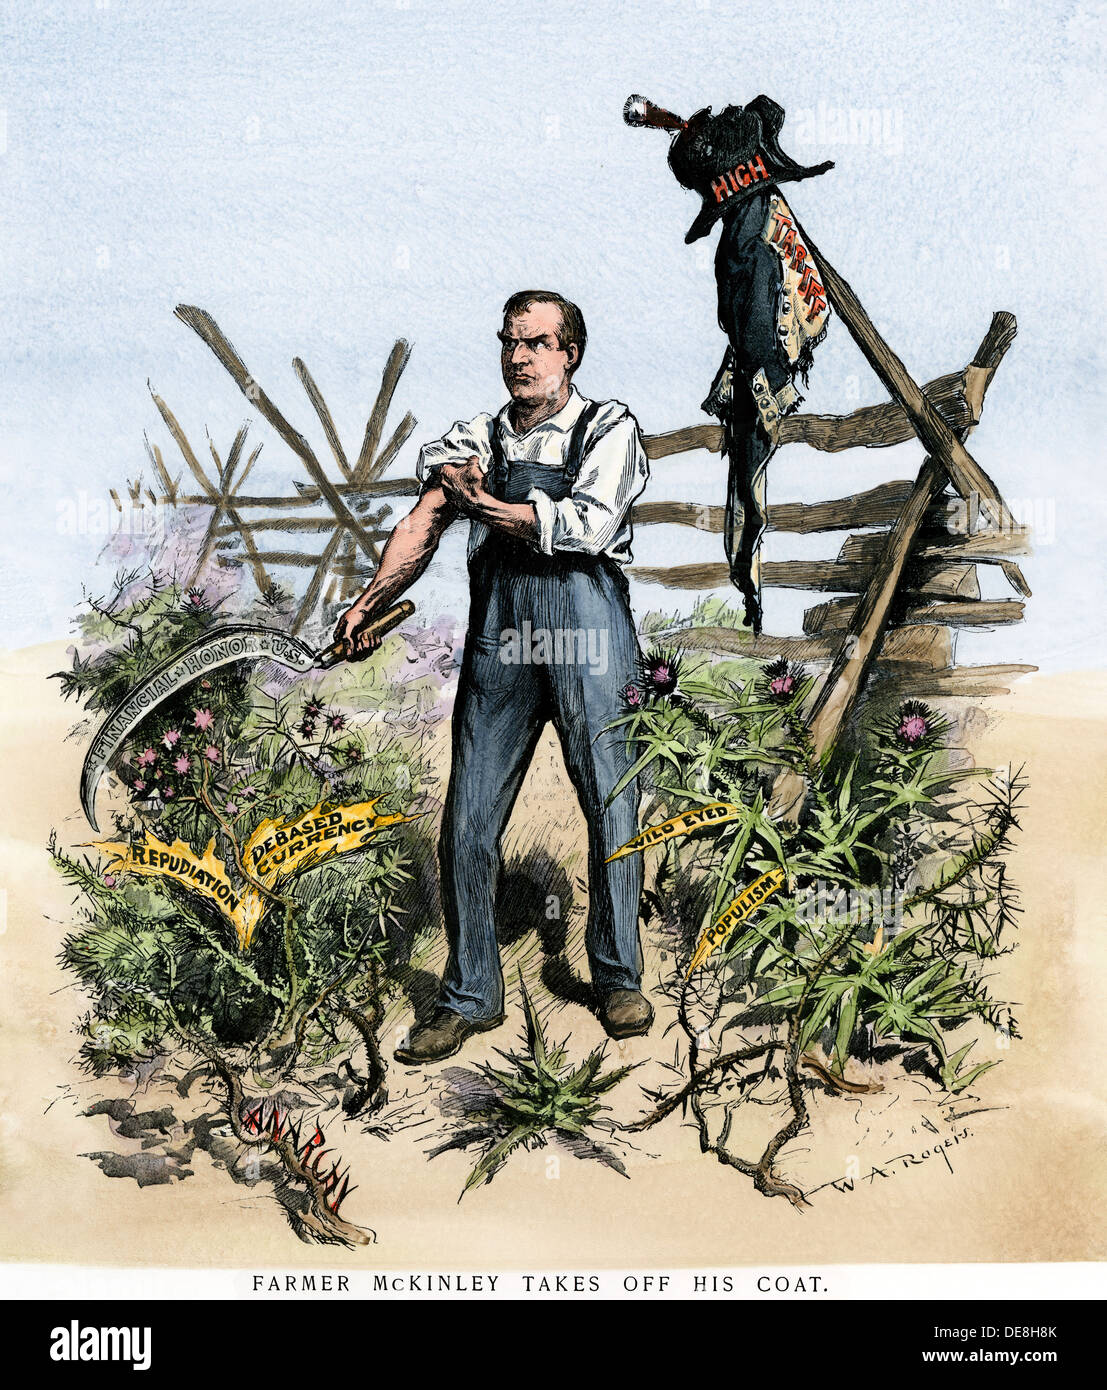 'Farmer McKinley Takes Off His Coat' cartoon about President McKinley weeding out problems, 1896. Hand-colored woodcut - Stock Image